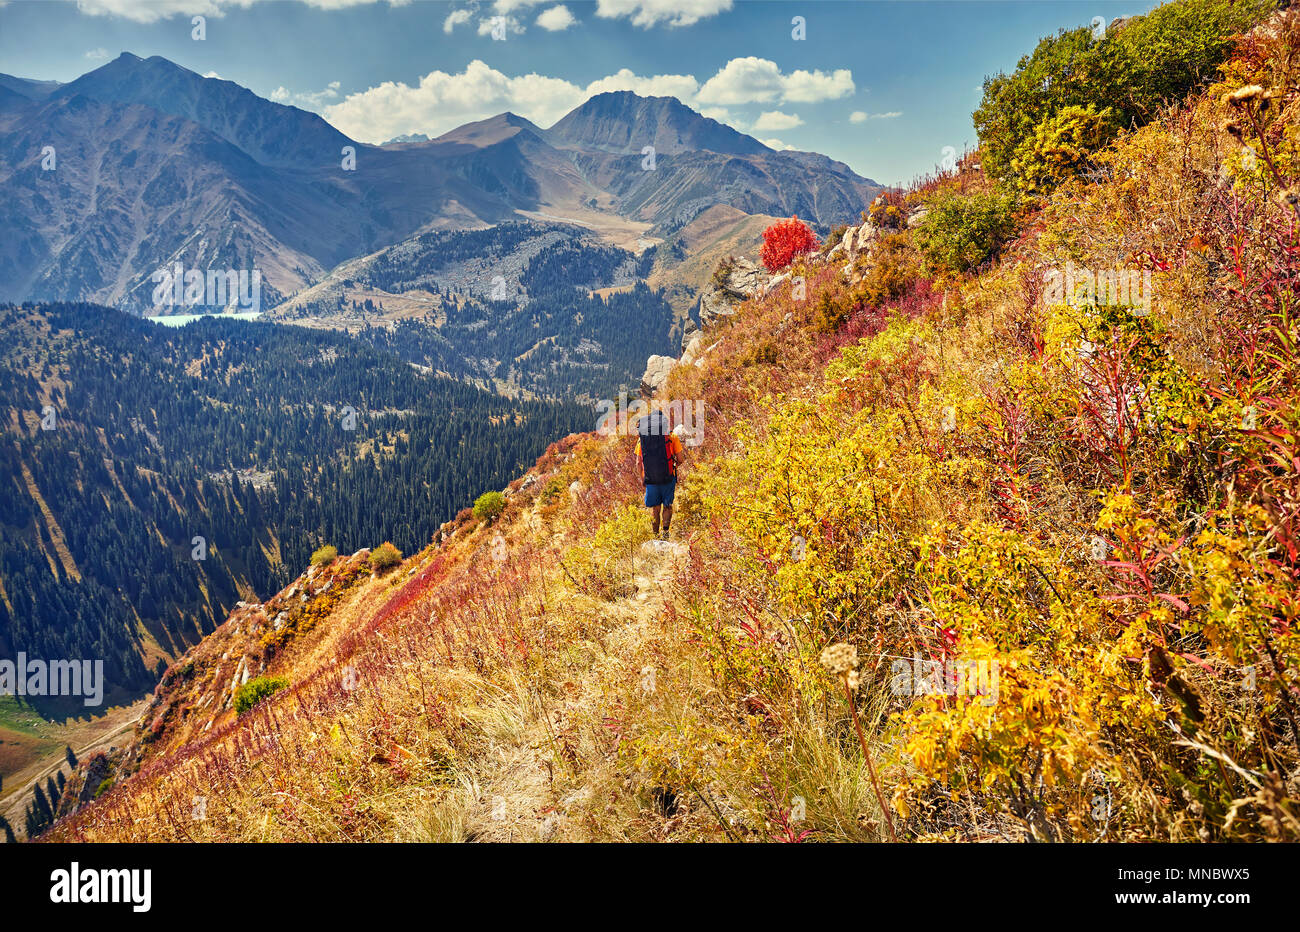 Hiker with big backpack walking on the trail at autumn yellow trees in the mountains - Stock Image